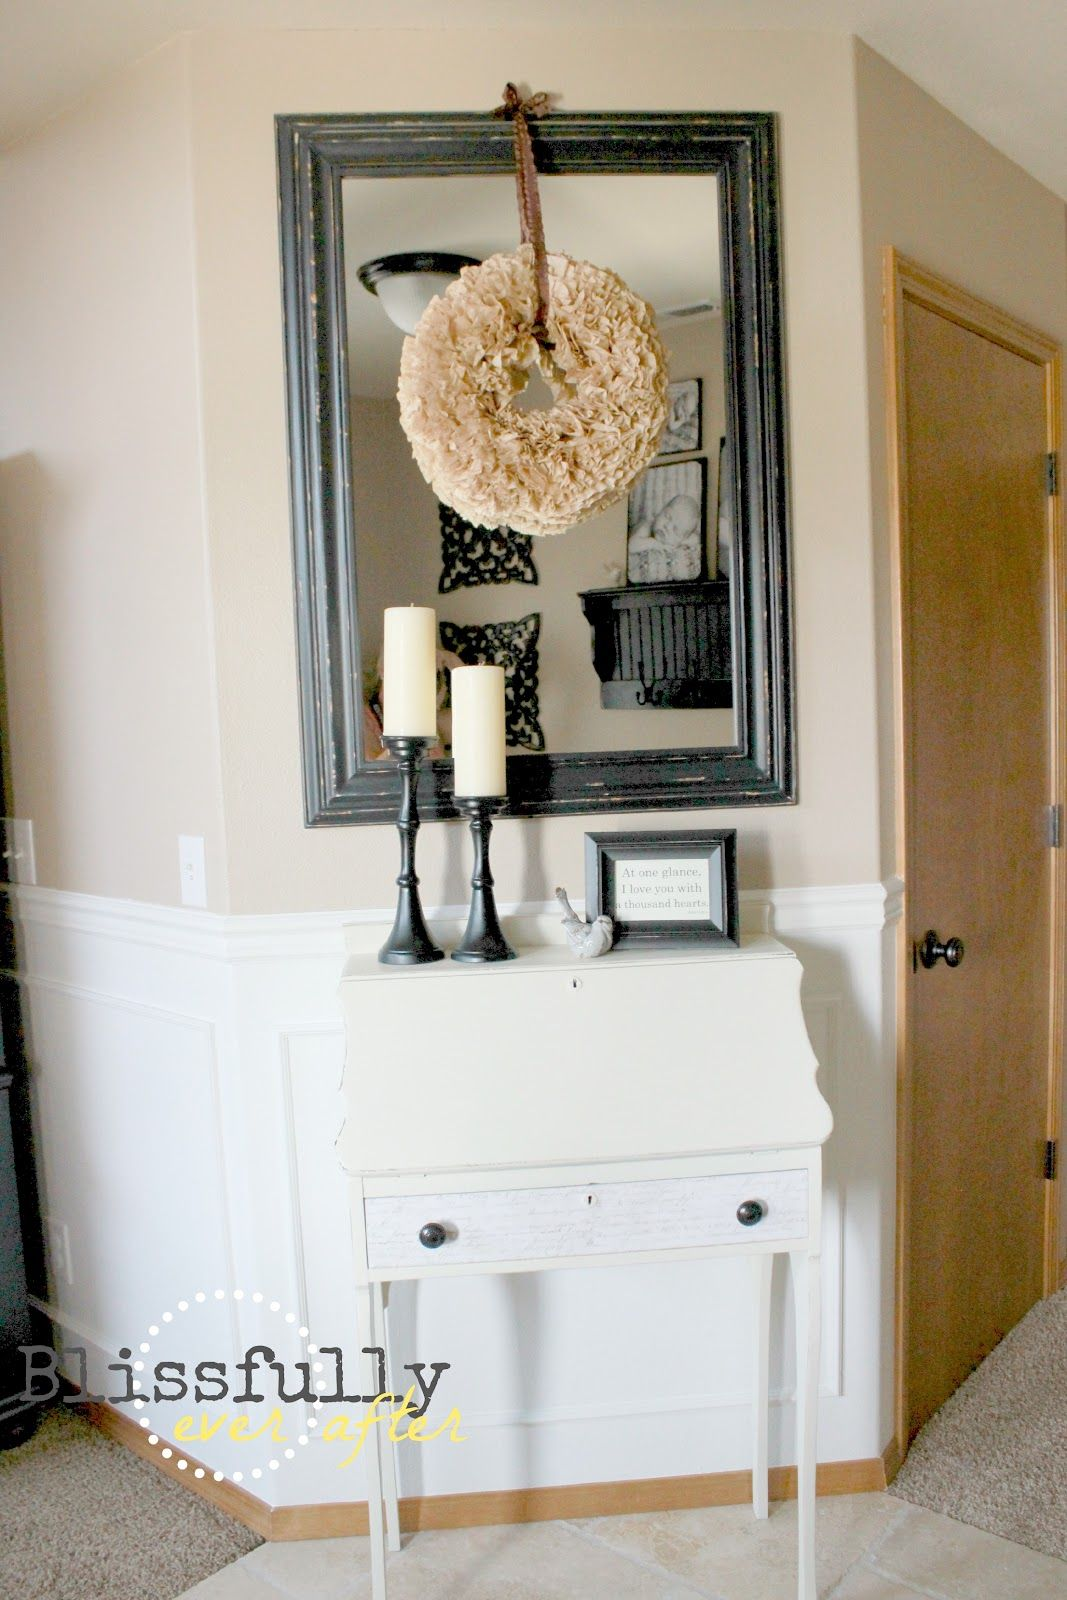 Blissfully ever after how to paint a door without brush